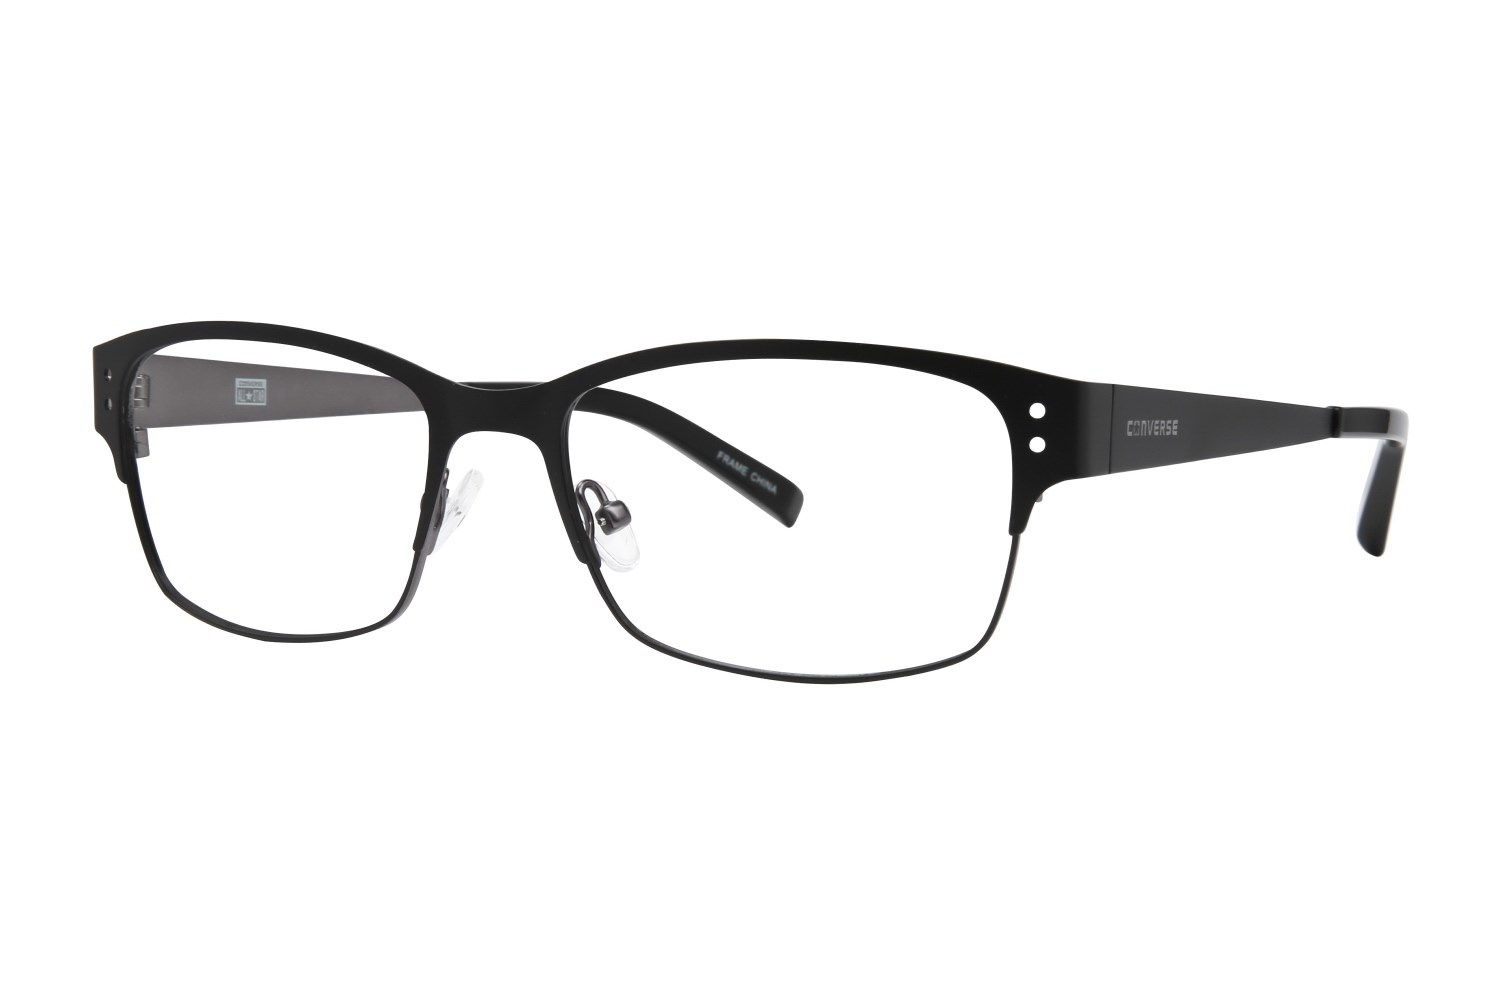 converse-q017-prescription-eyeglasses